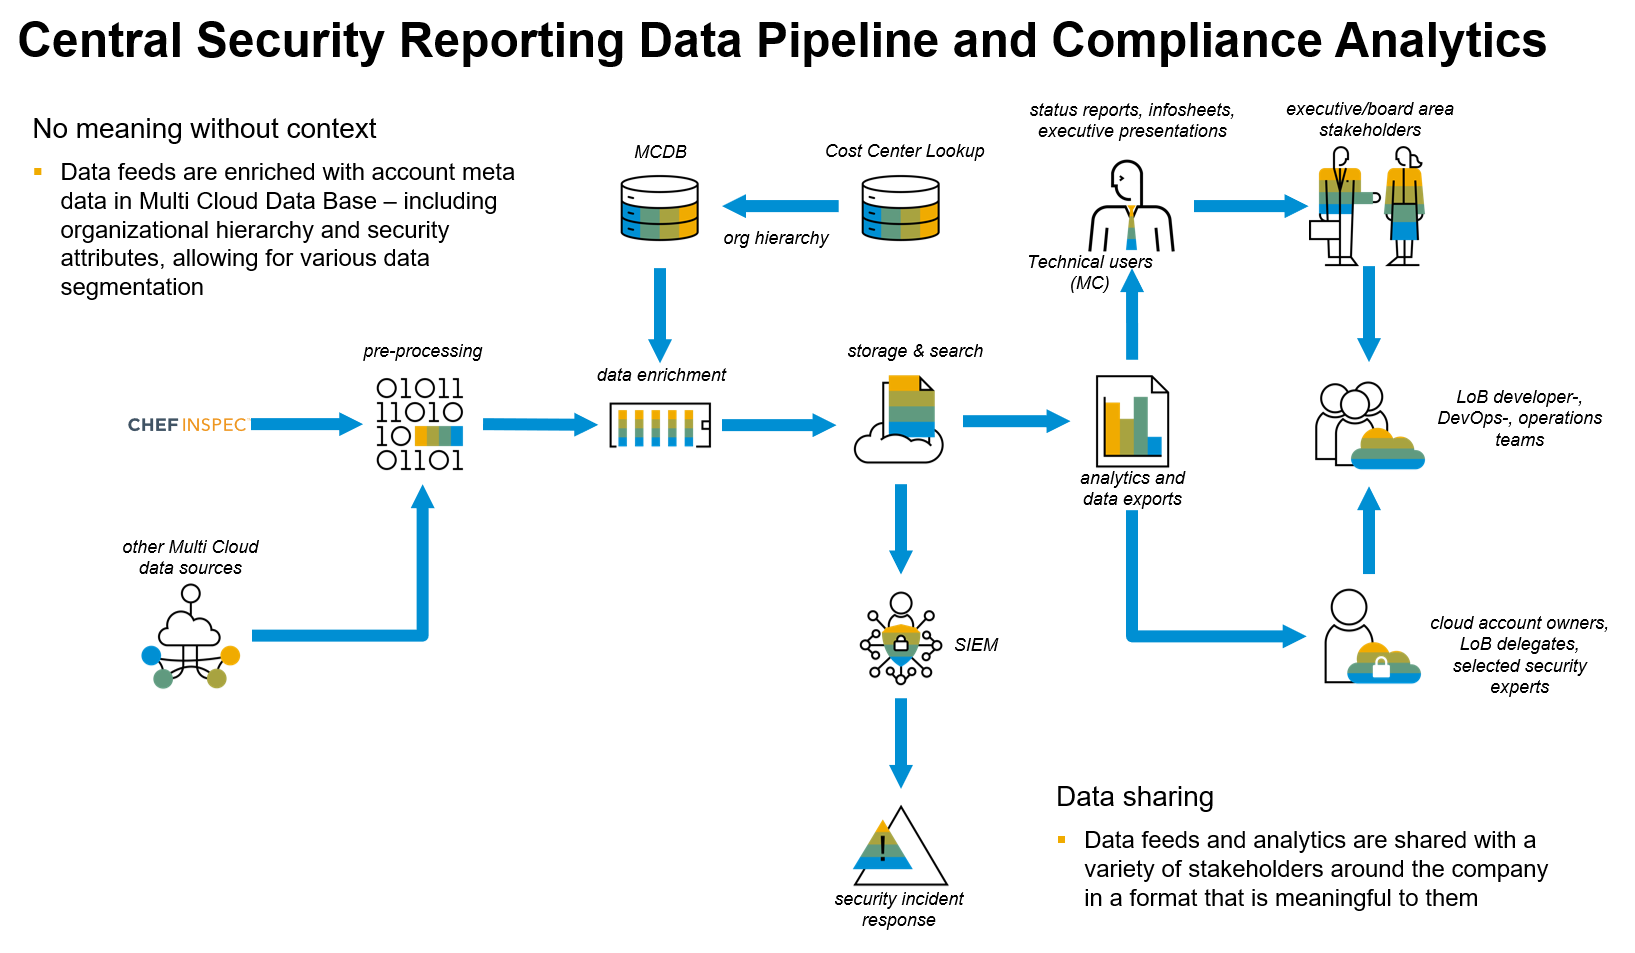 Data%20enrichment%20pipeline%2C%20reporting%20and%20analytics